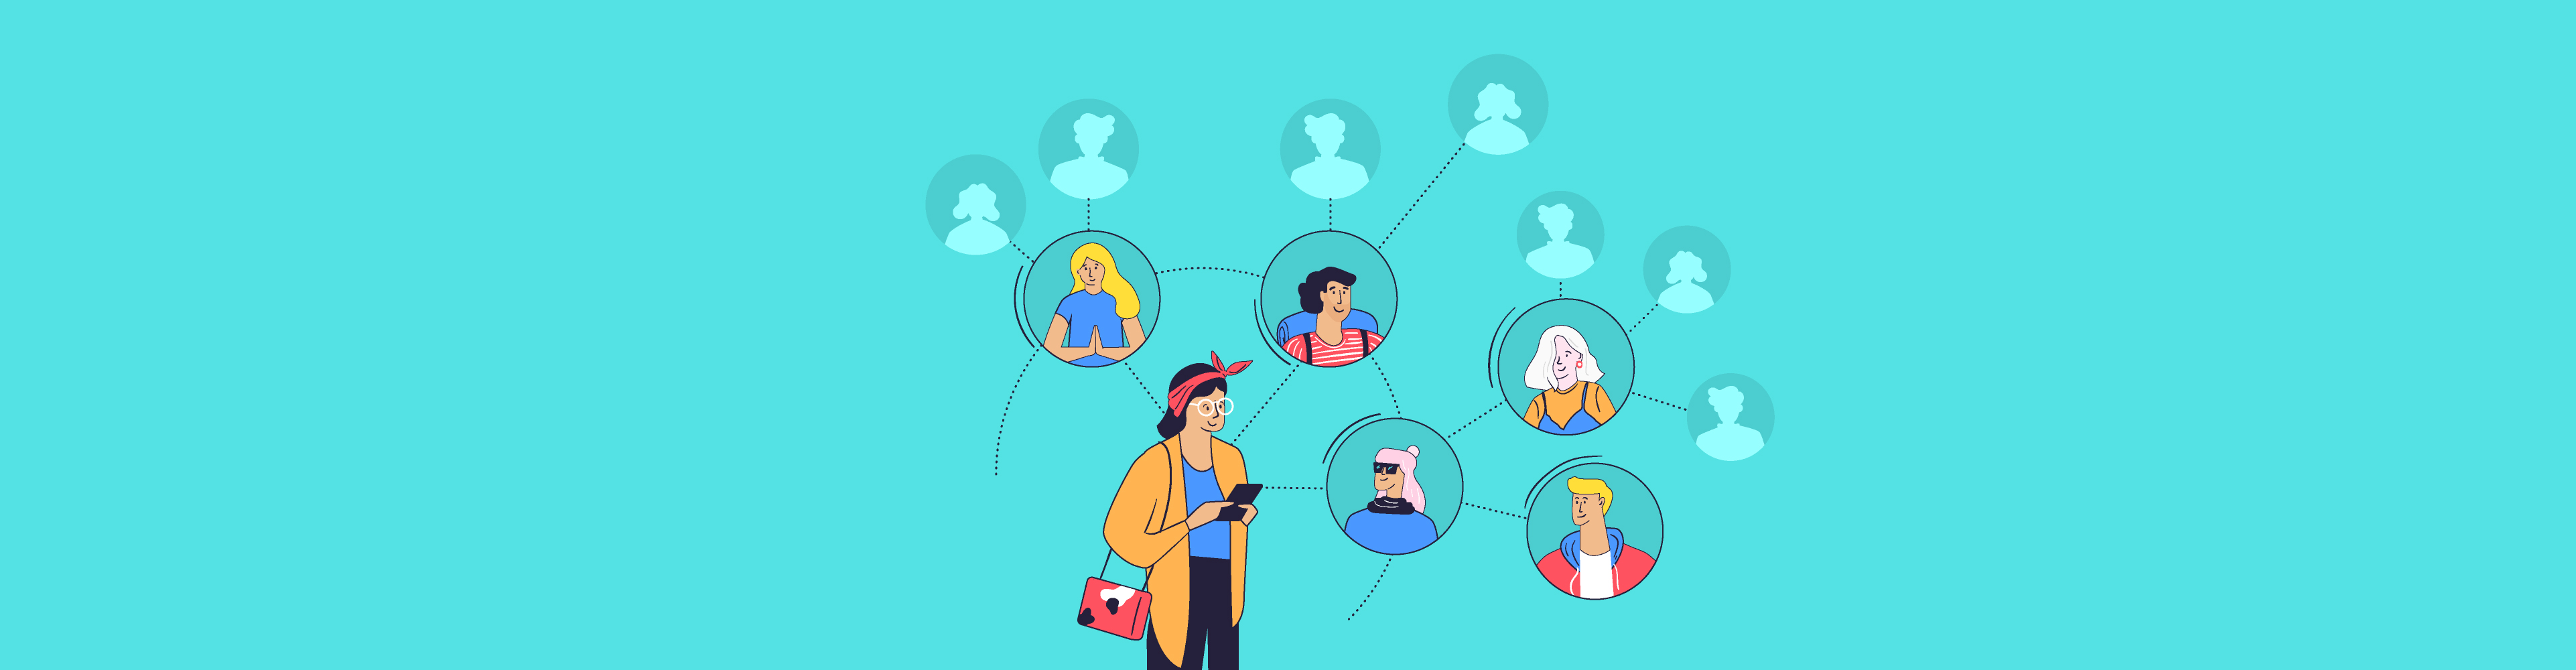 social media influencer trends influencer marketing header